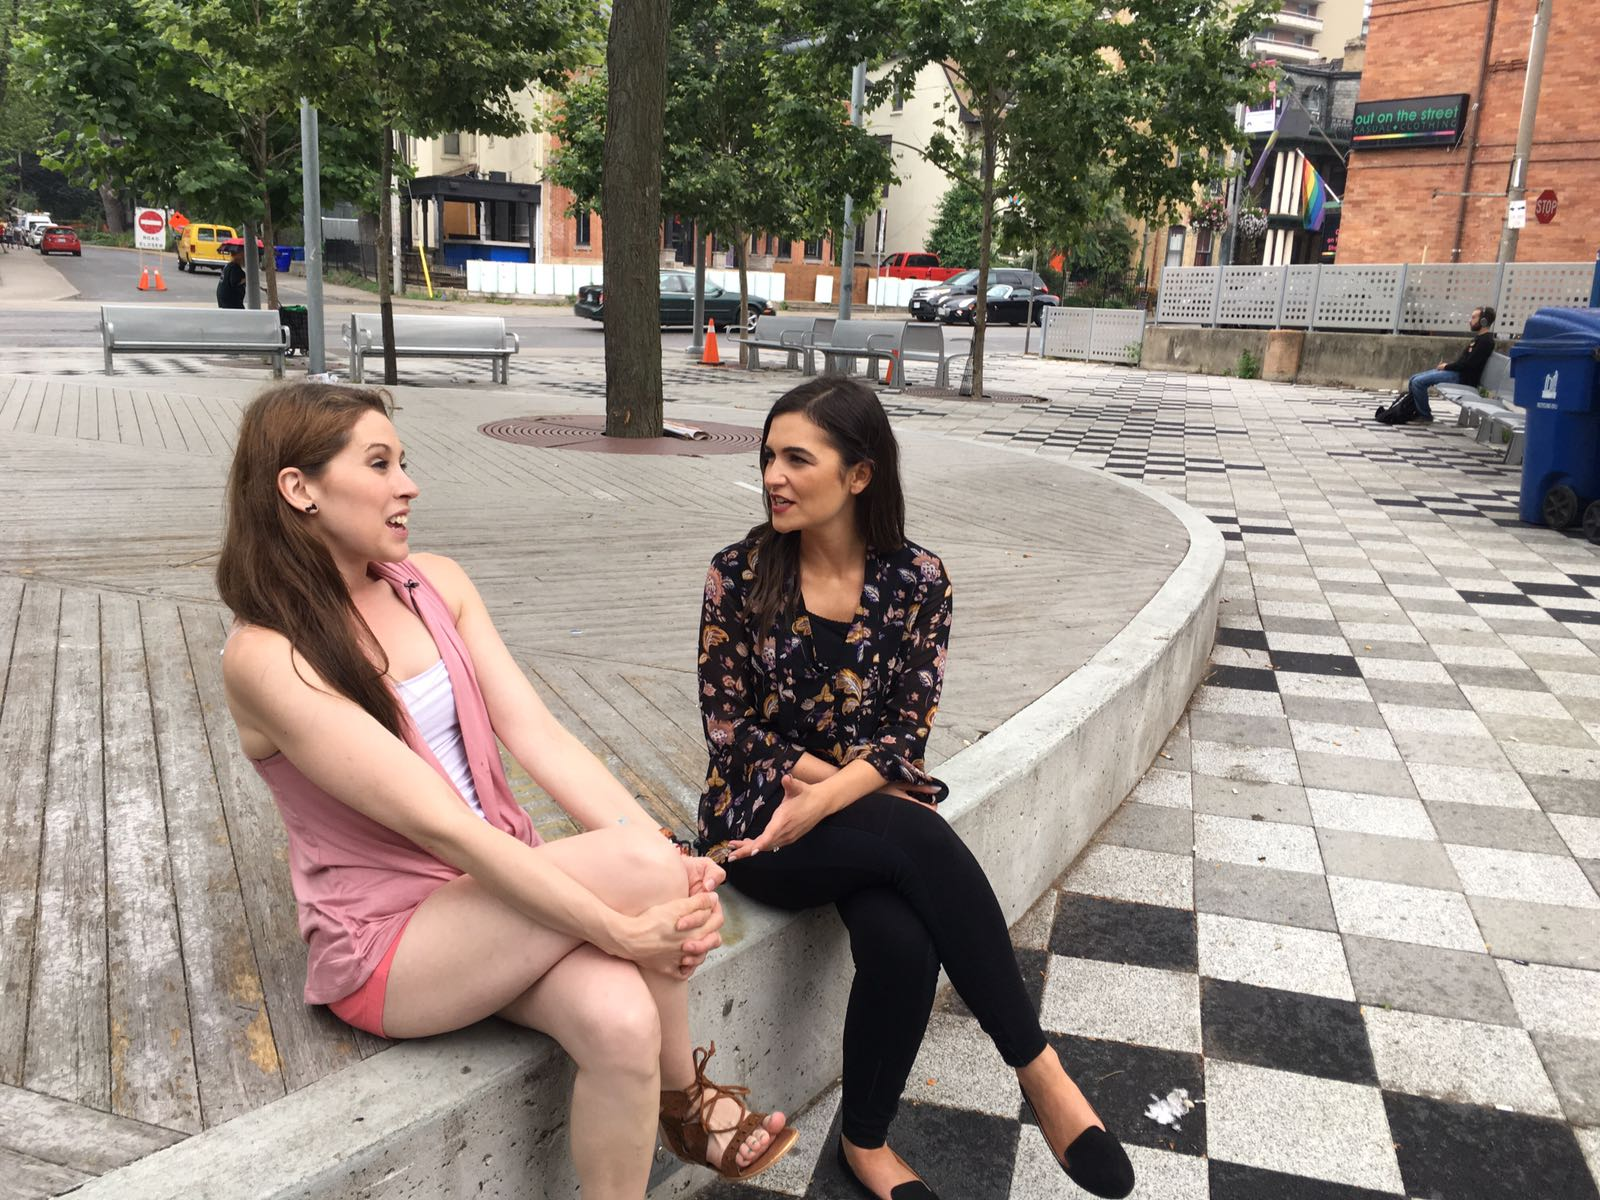 Surrogate Ashley and Companion at City News in Ontario Surrogacy